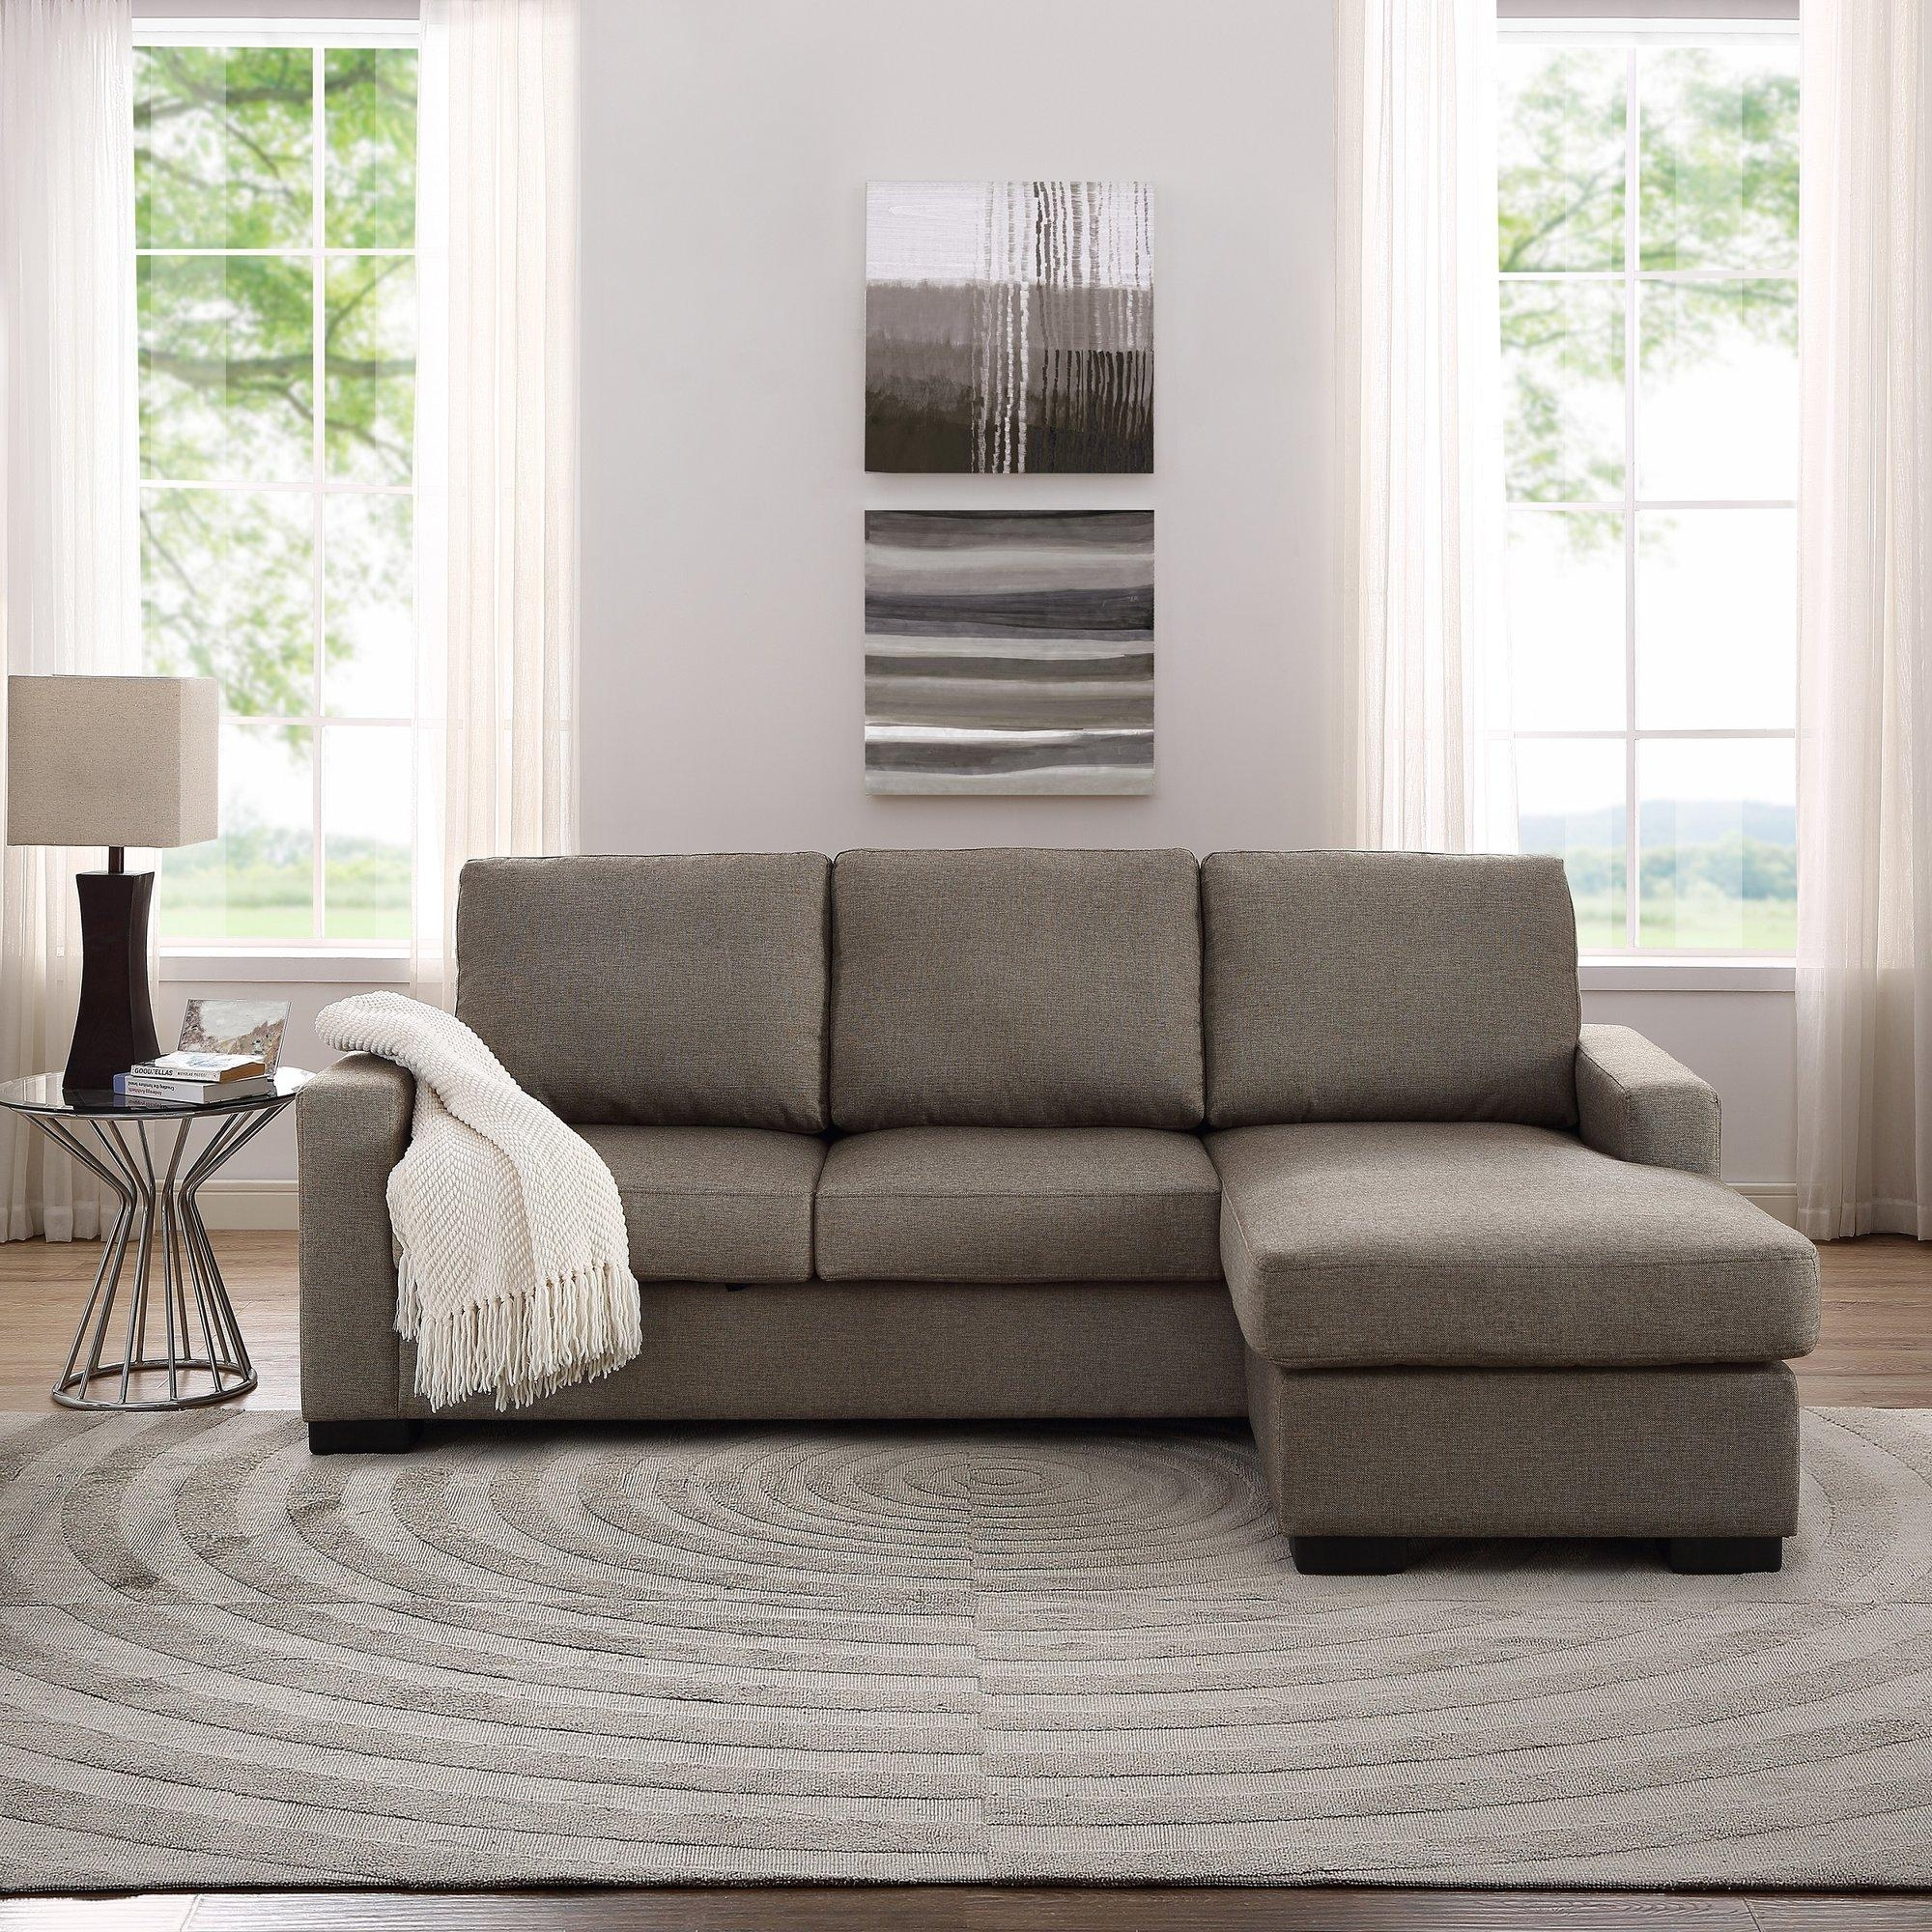 Furniture: Sectional Sofas Amazon | Tufted Sectional Sofa Chaise In Tufted Sectional Sofa With Chaise (Image 5 of 20)